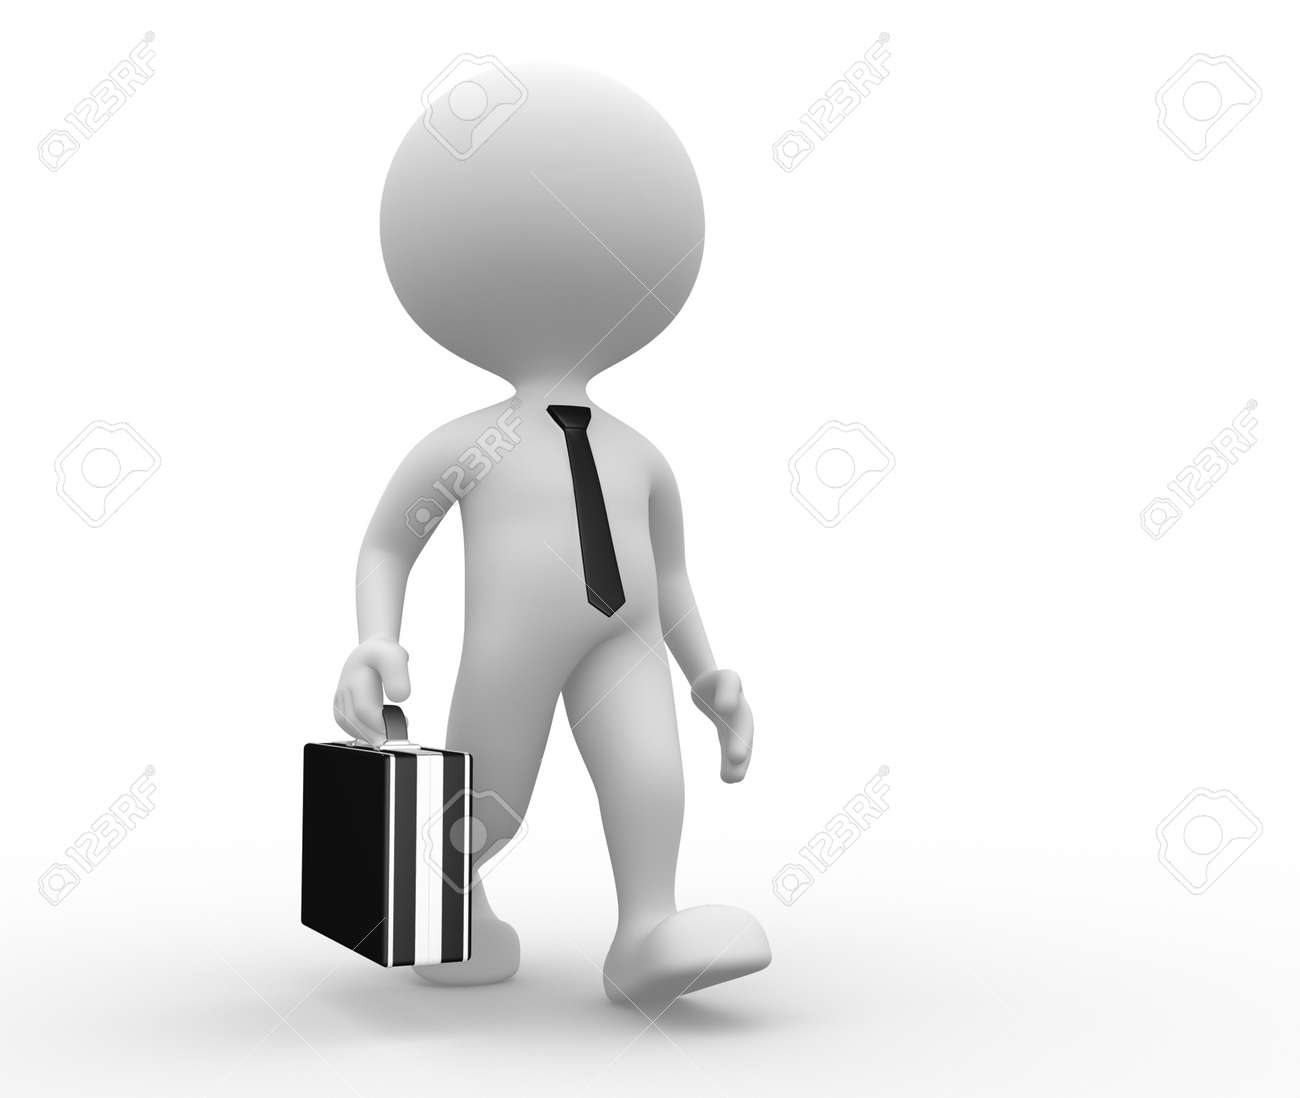 3d people - man, person with a briefcase. Businessman Stock Photo - 21138638